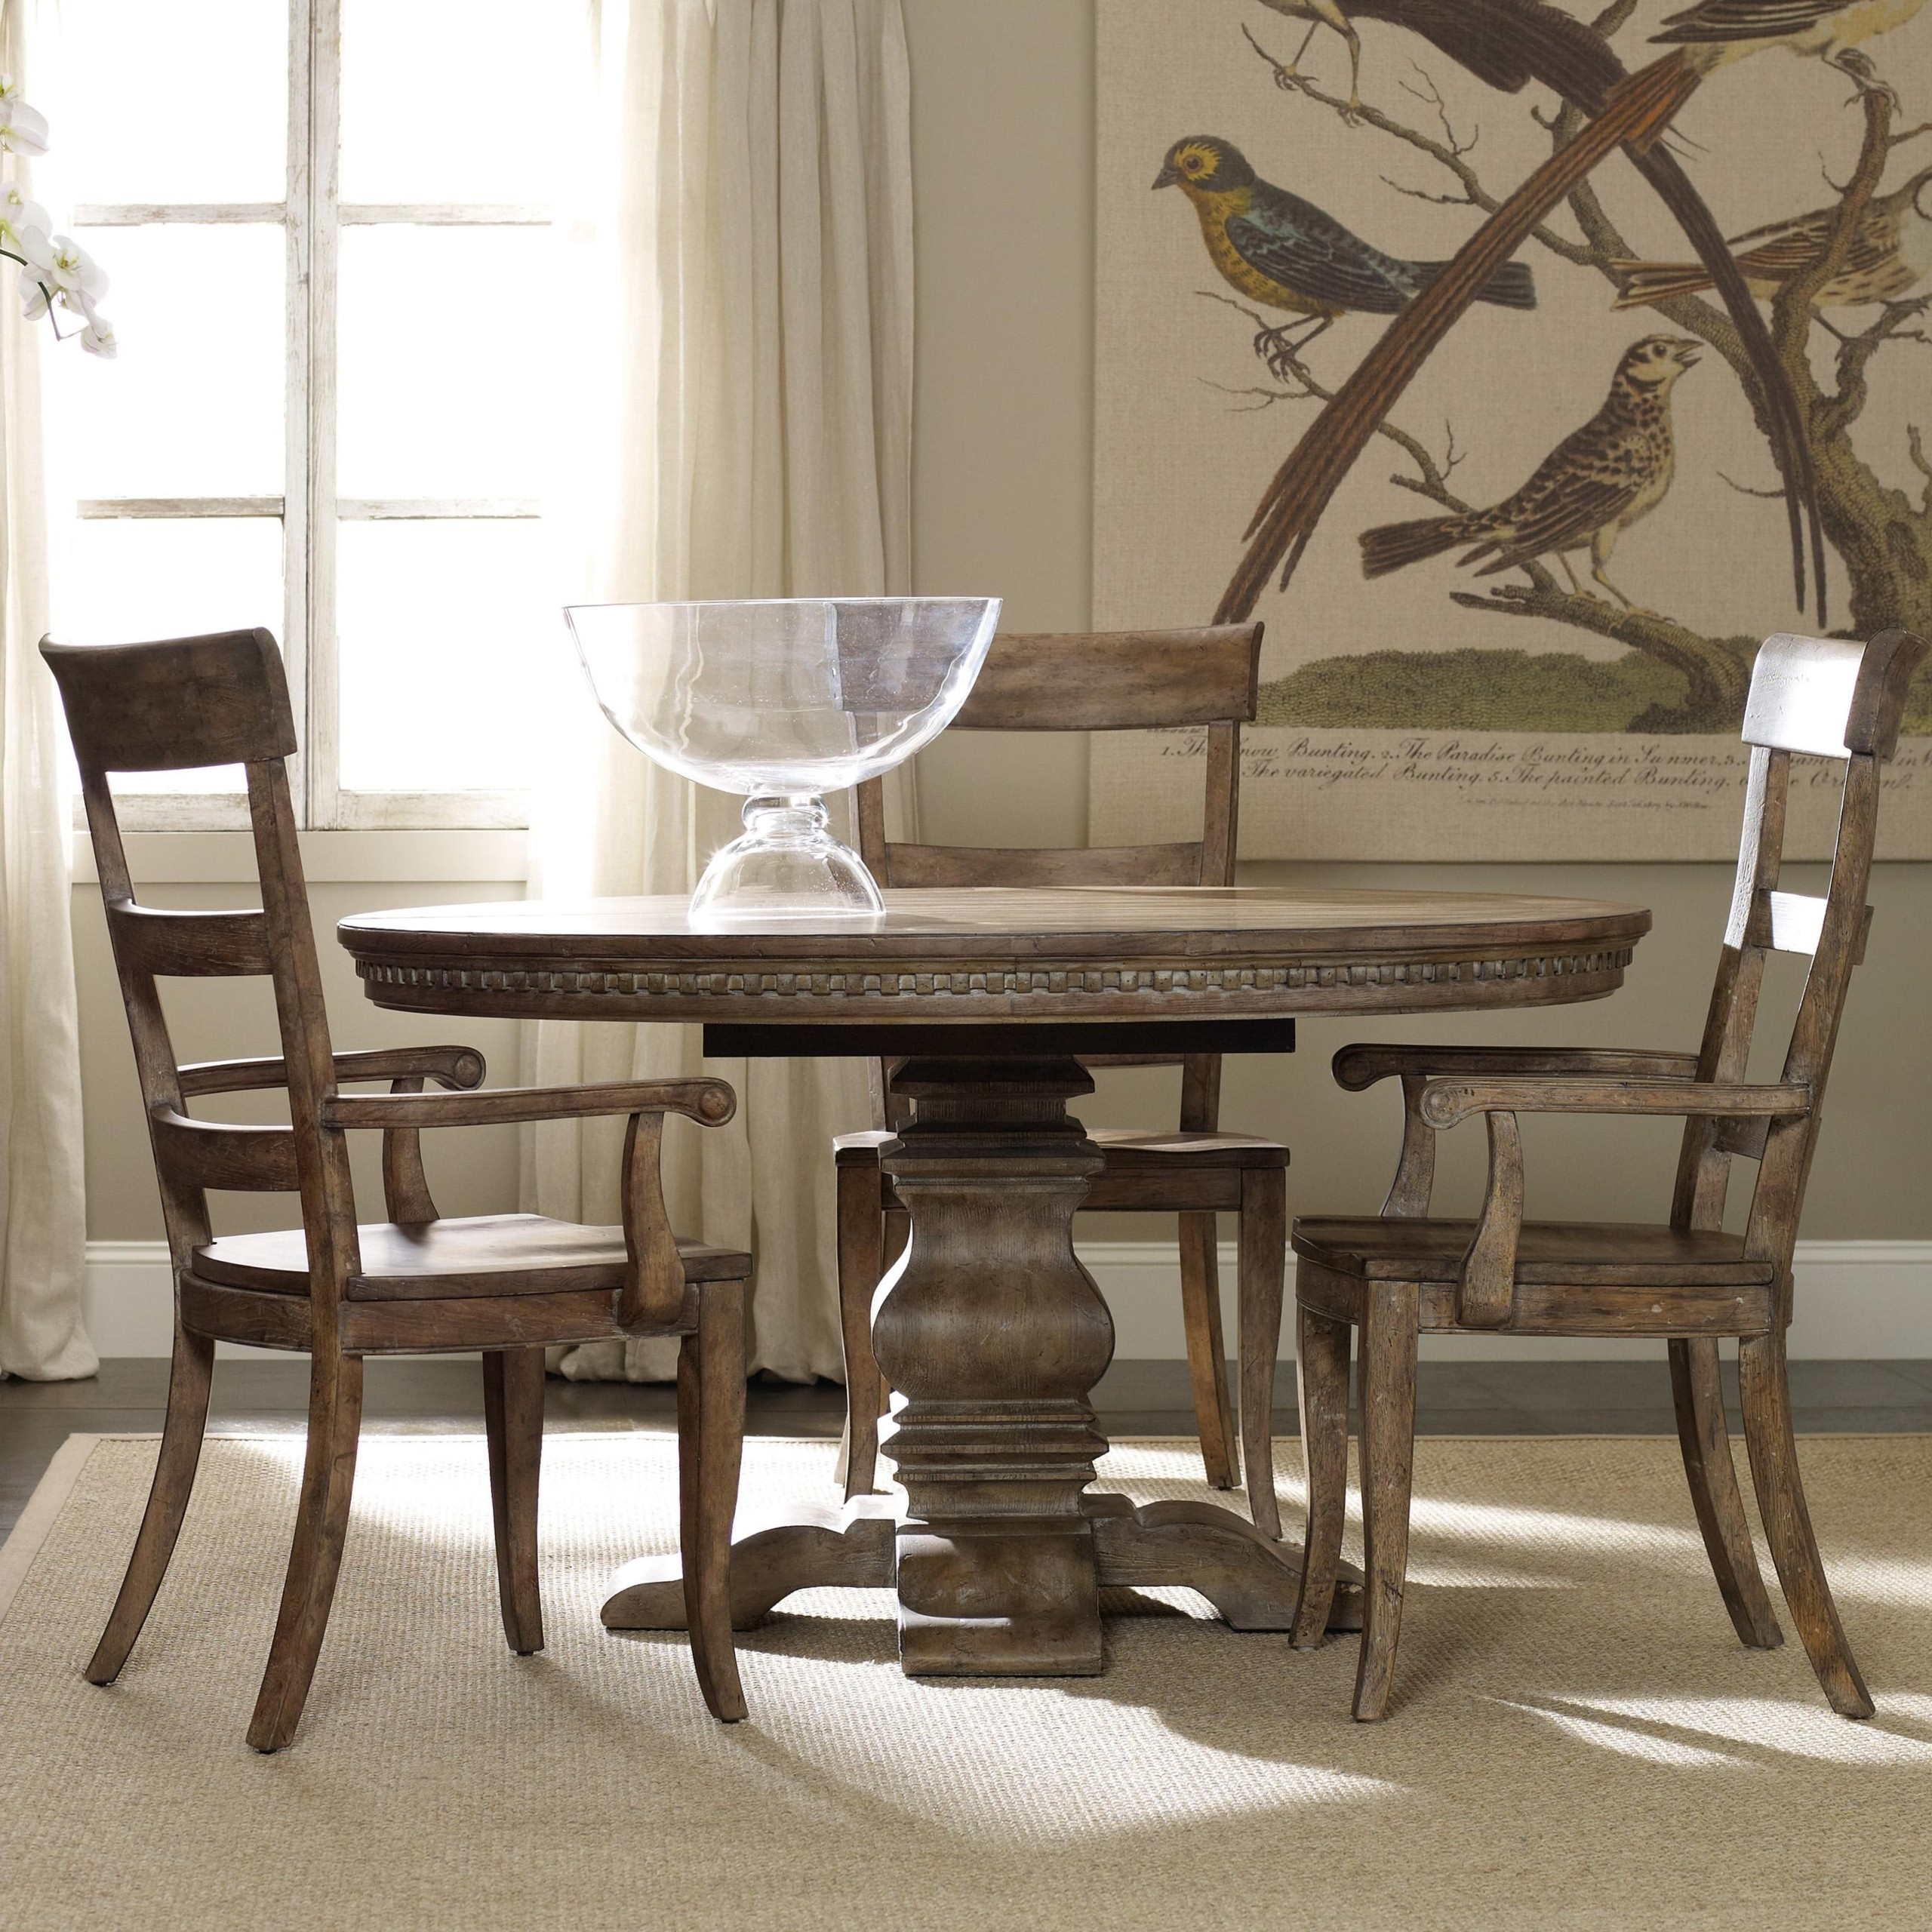 Dining Room Tables With Extension Leaves 2